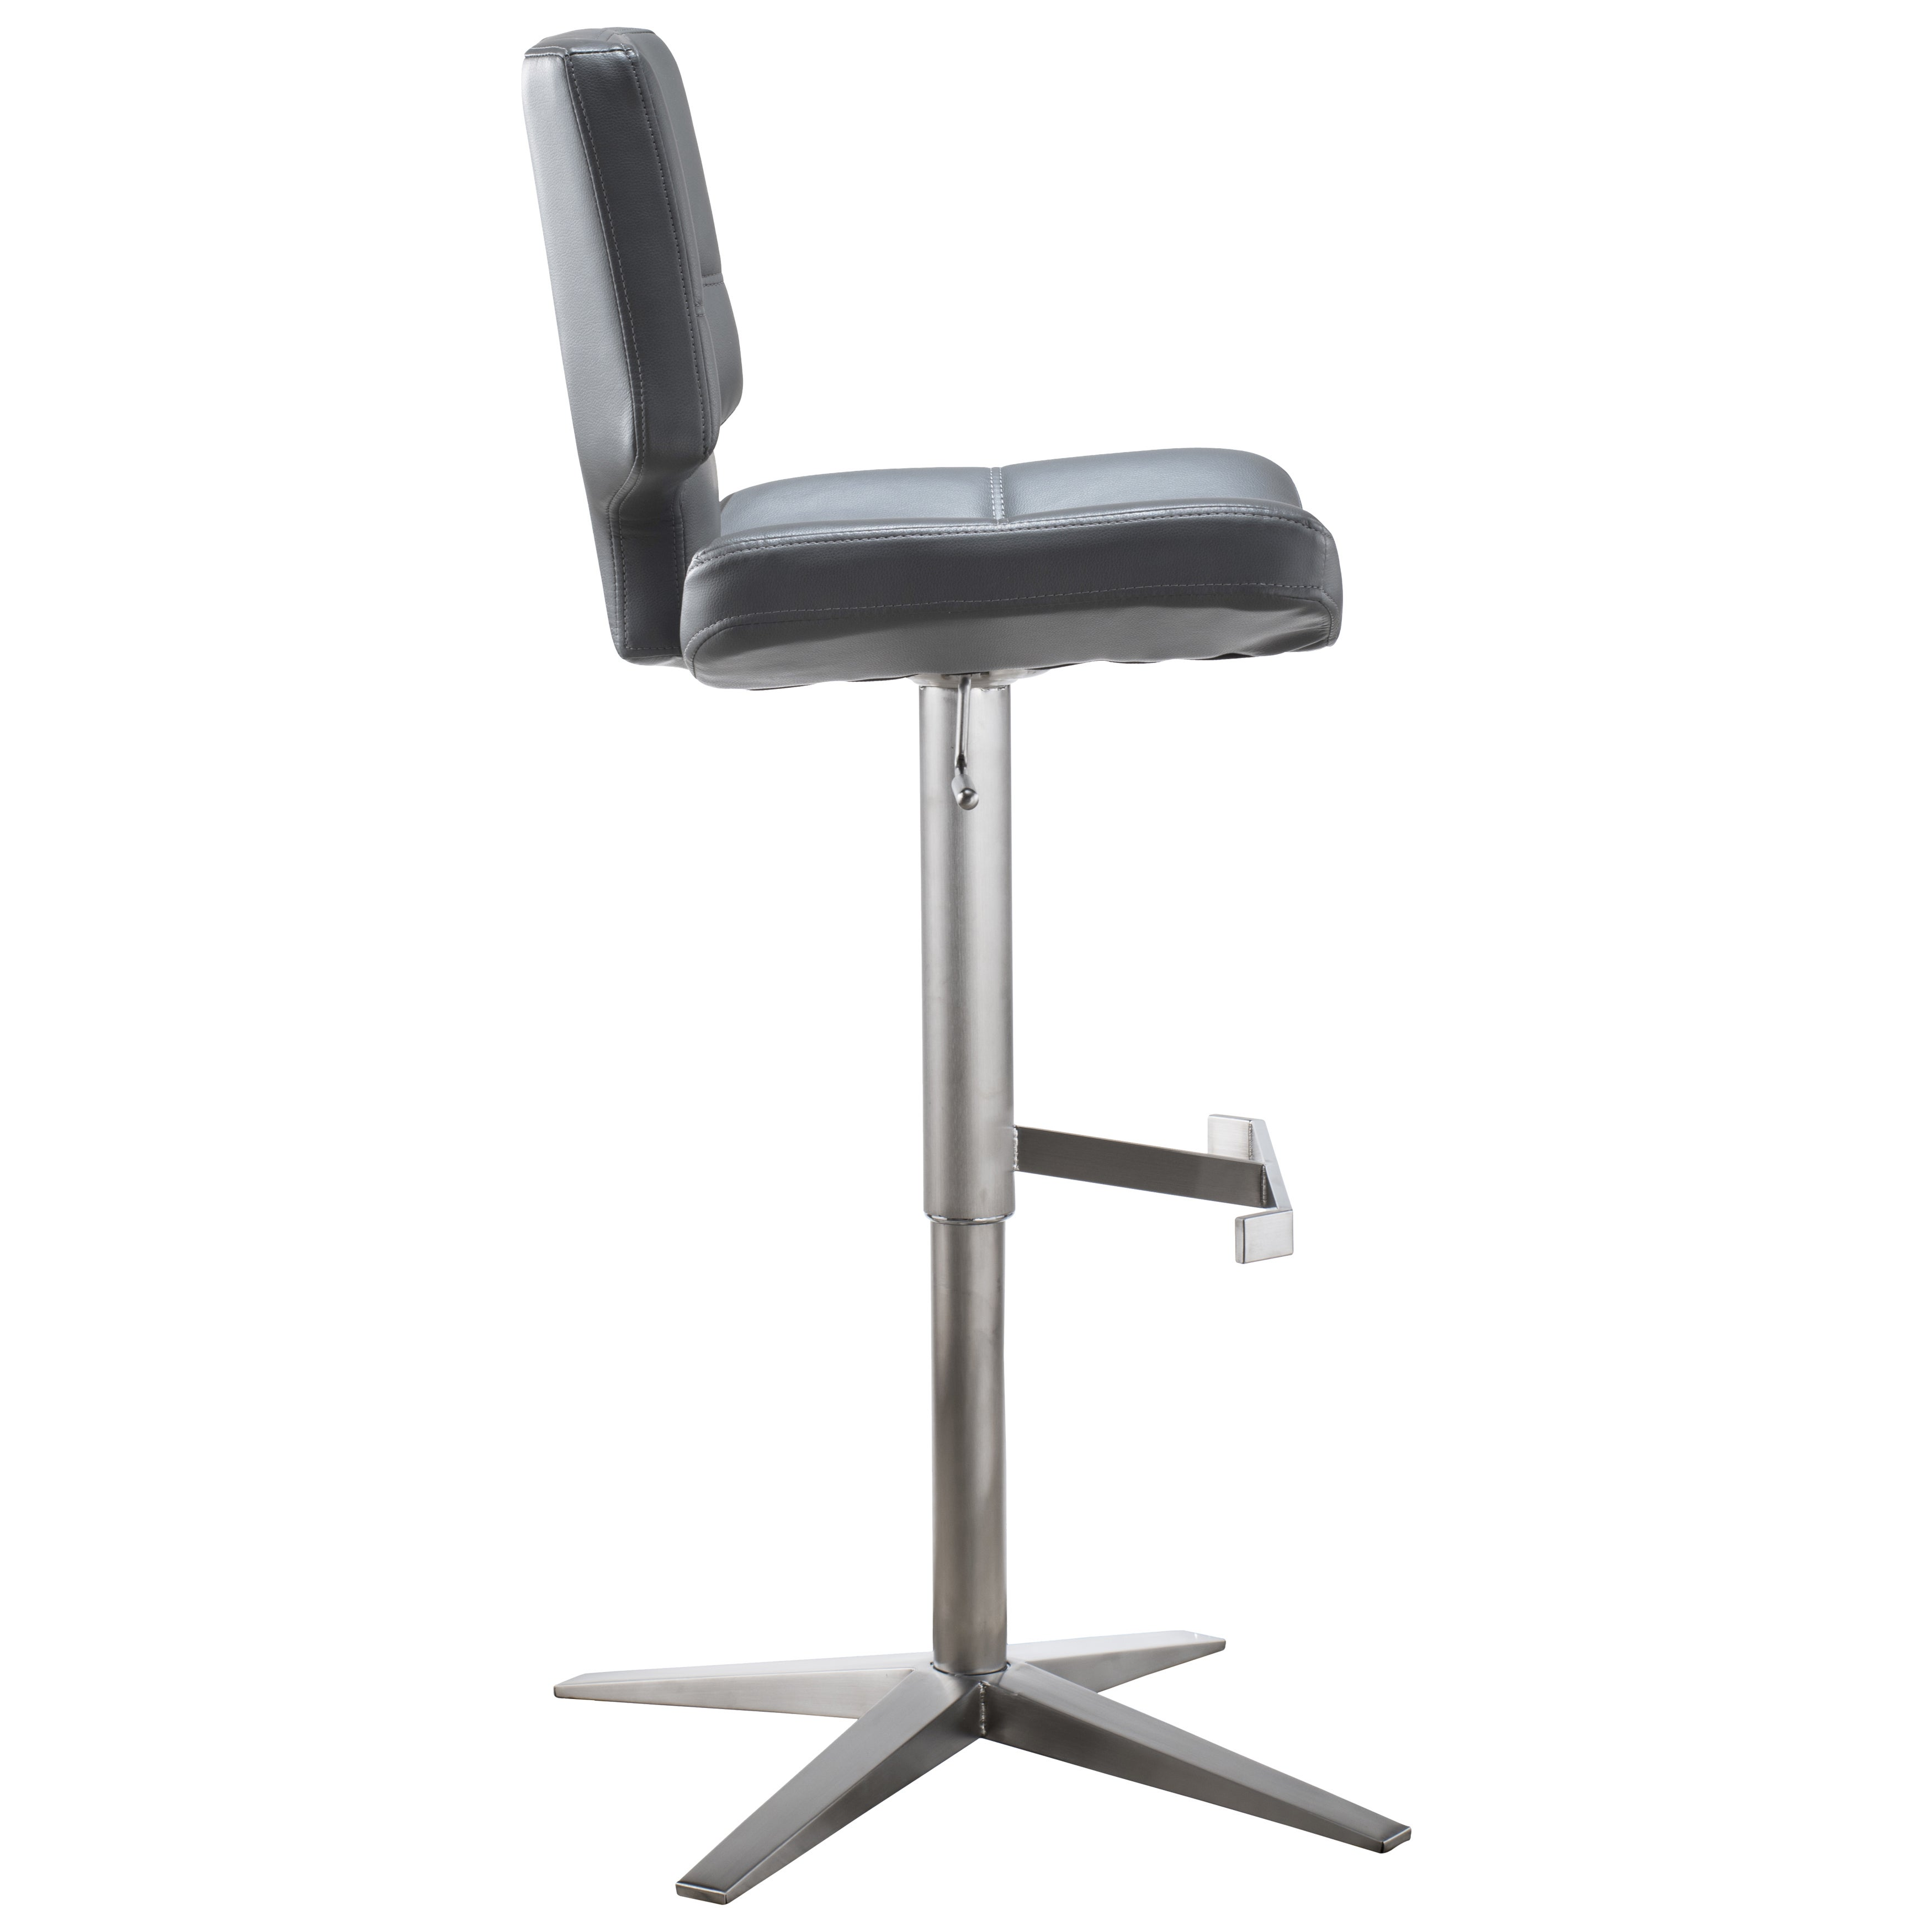 adjustable height swivel bar stool. MIX Brushed Stainless Steel X Base High-Back Adjustable Height Swivel Bar Stool - Free Shipping Today Overstock 20969829